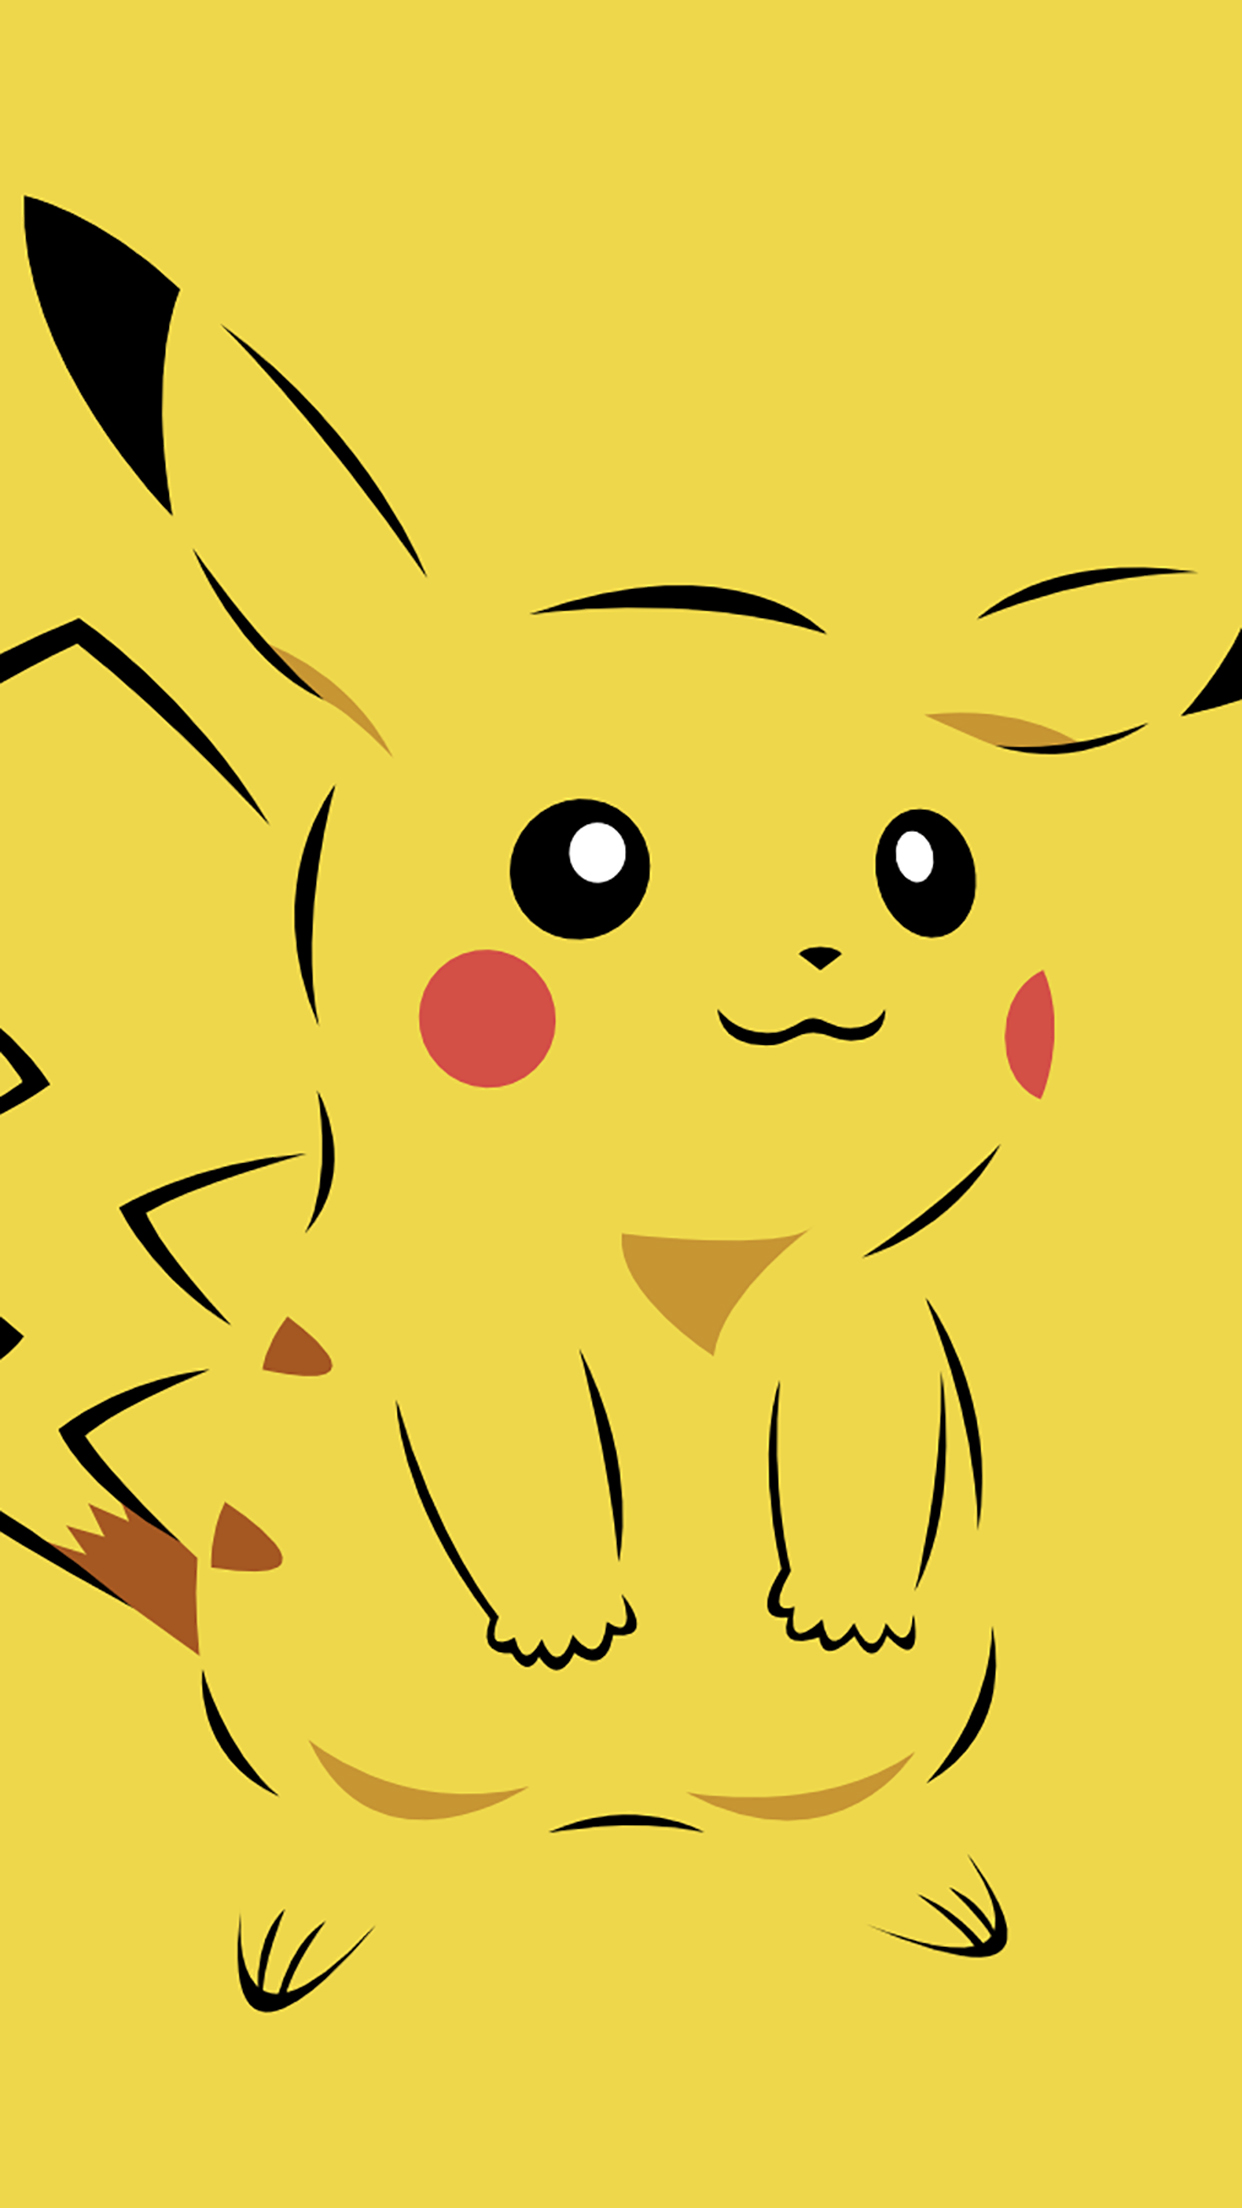 pikachu wallpaper iphone 6